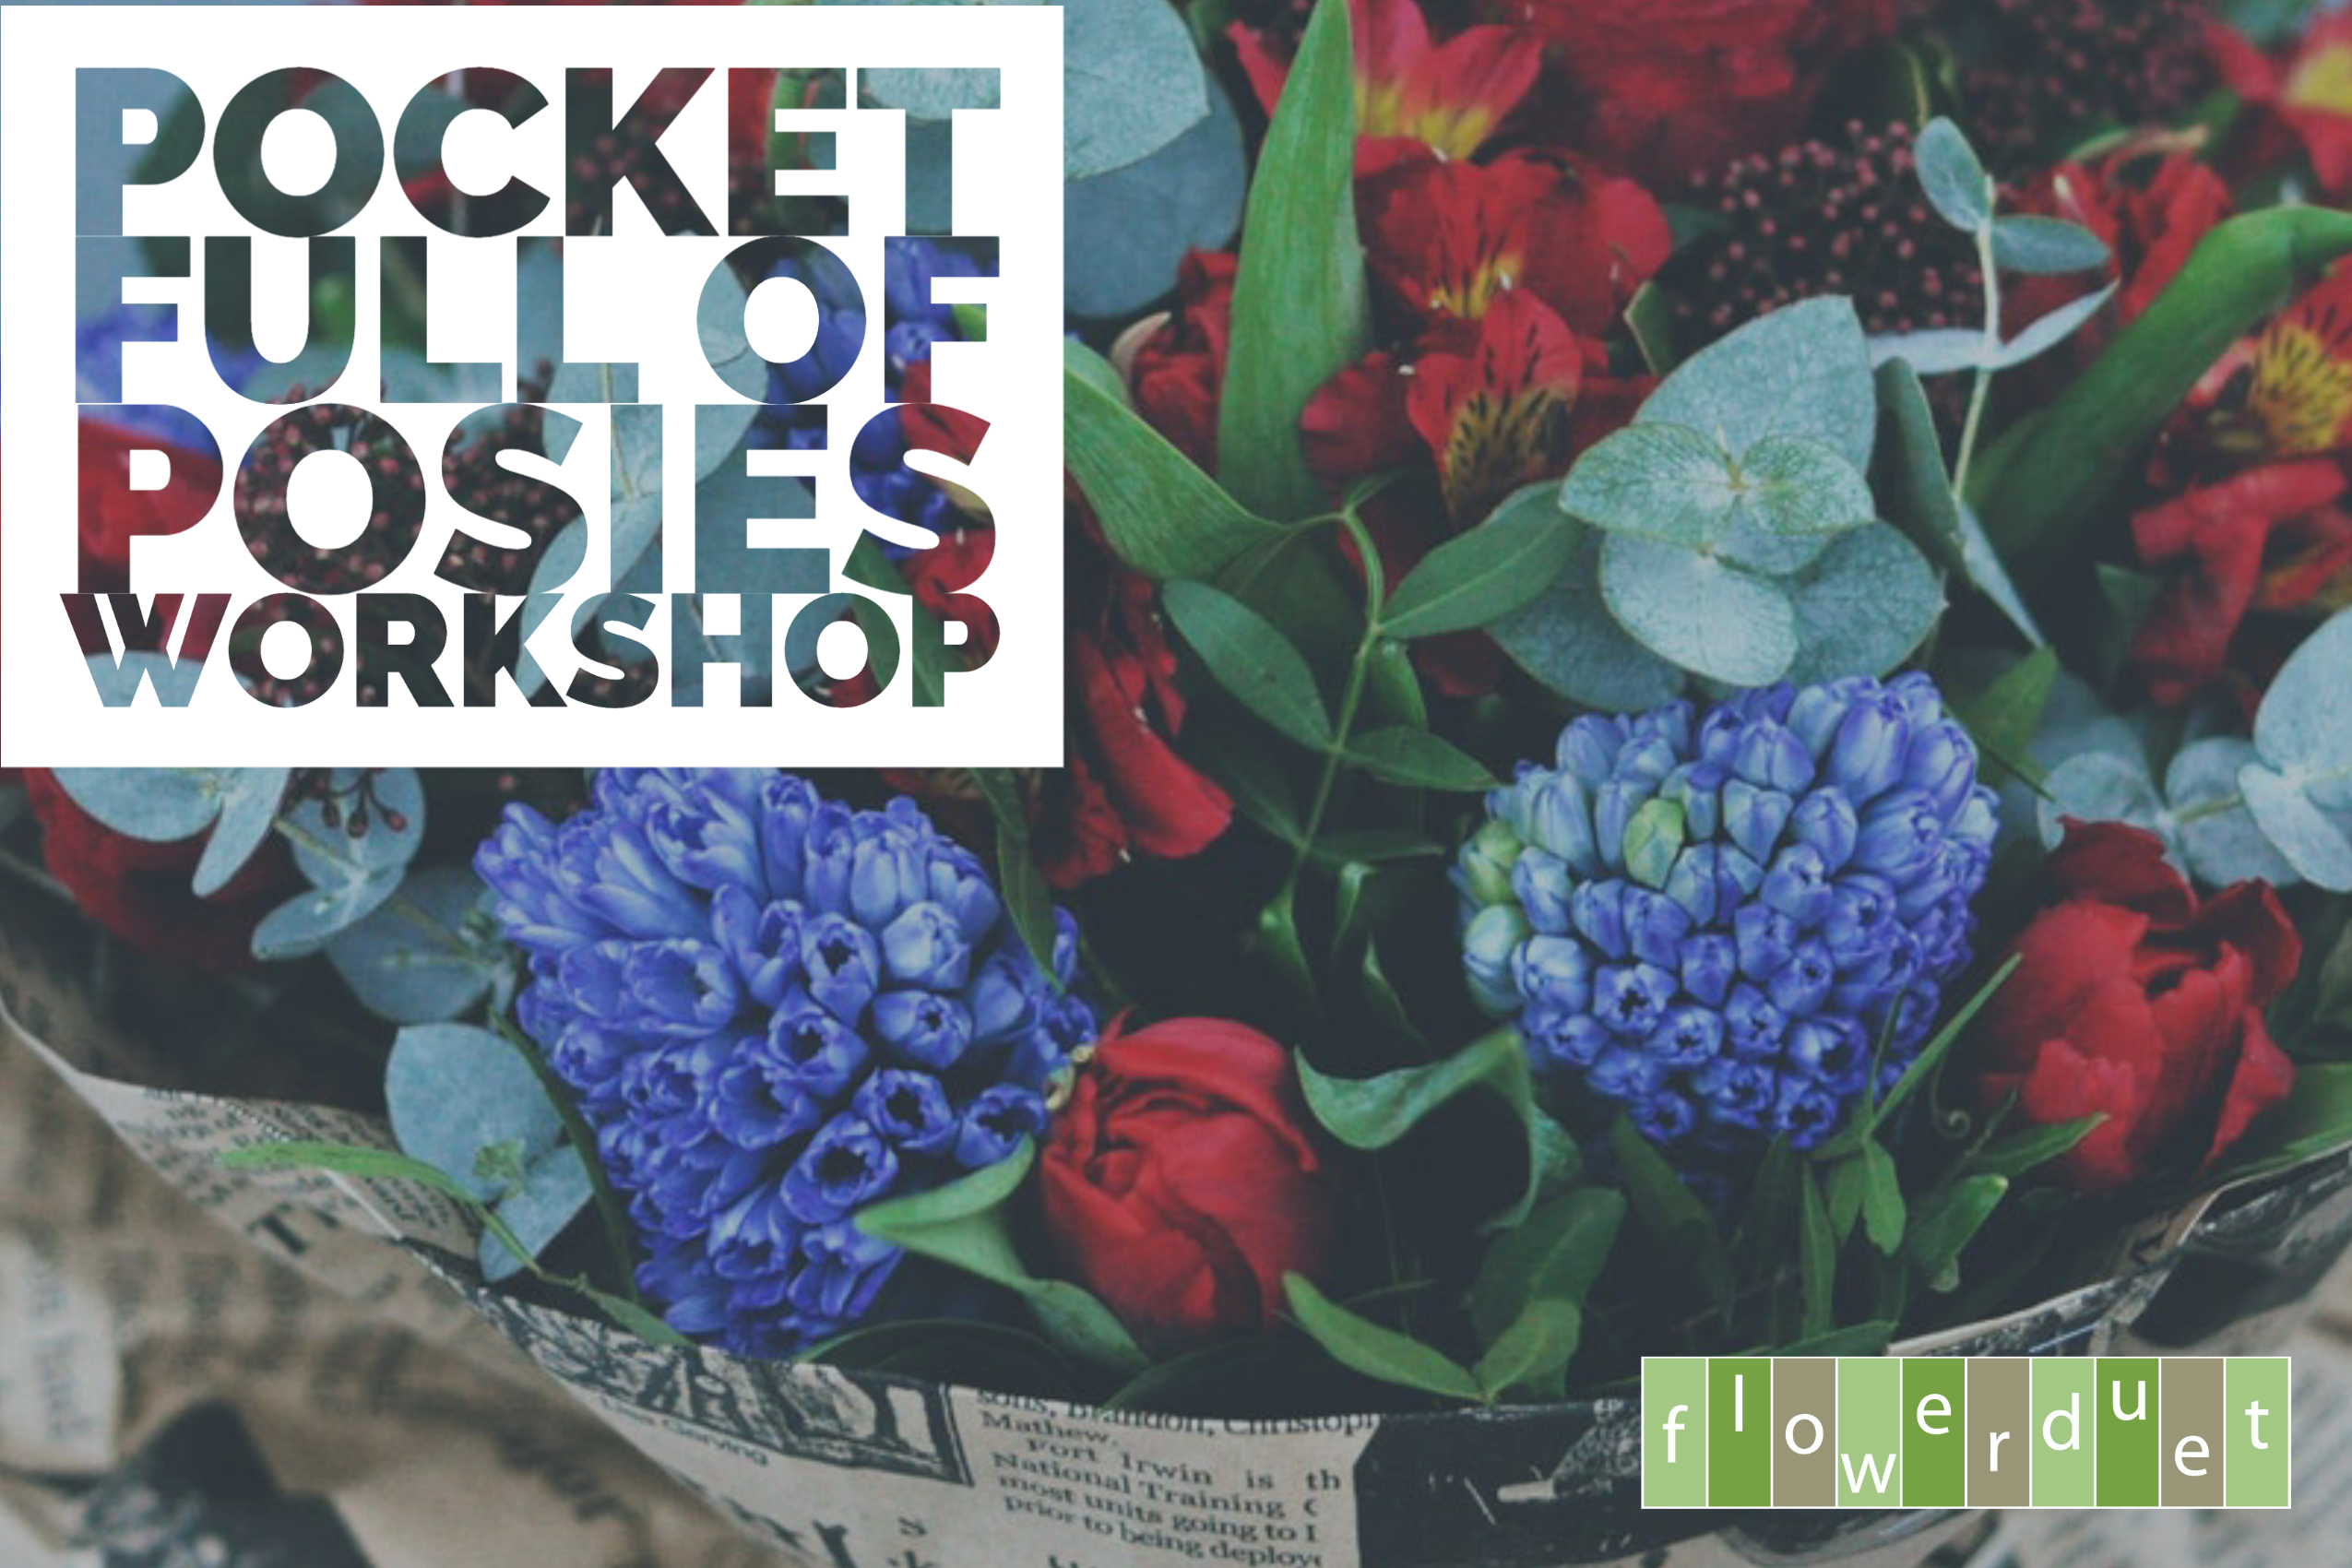 Pocket full of Posies Workshop